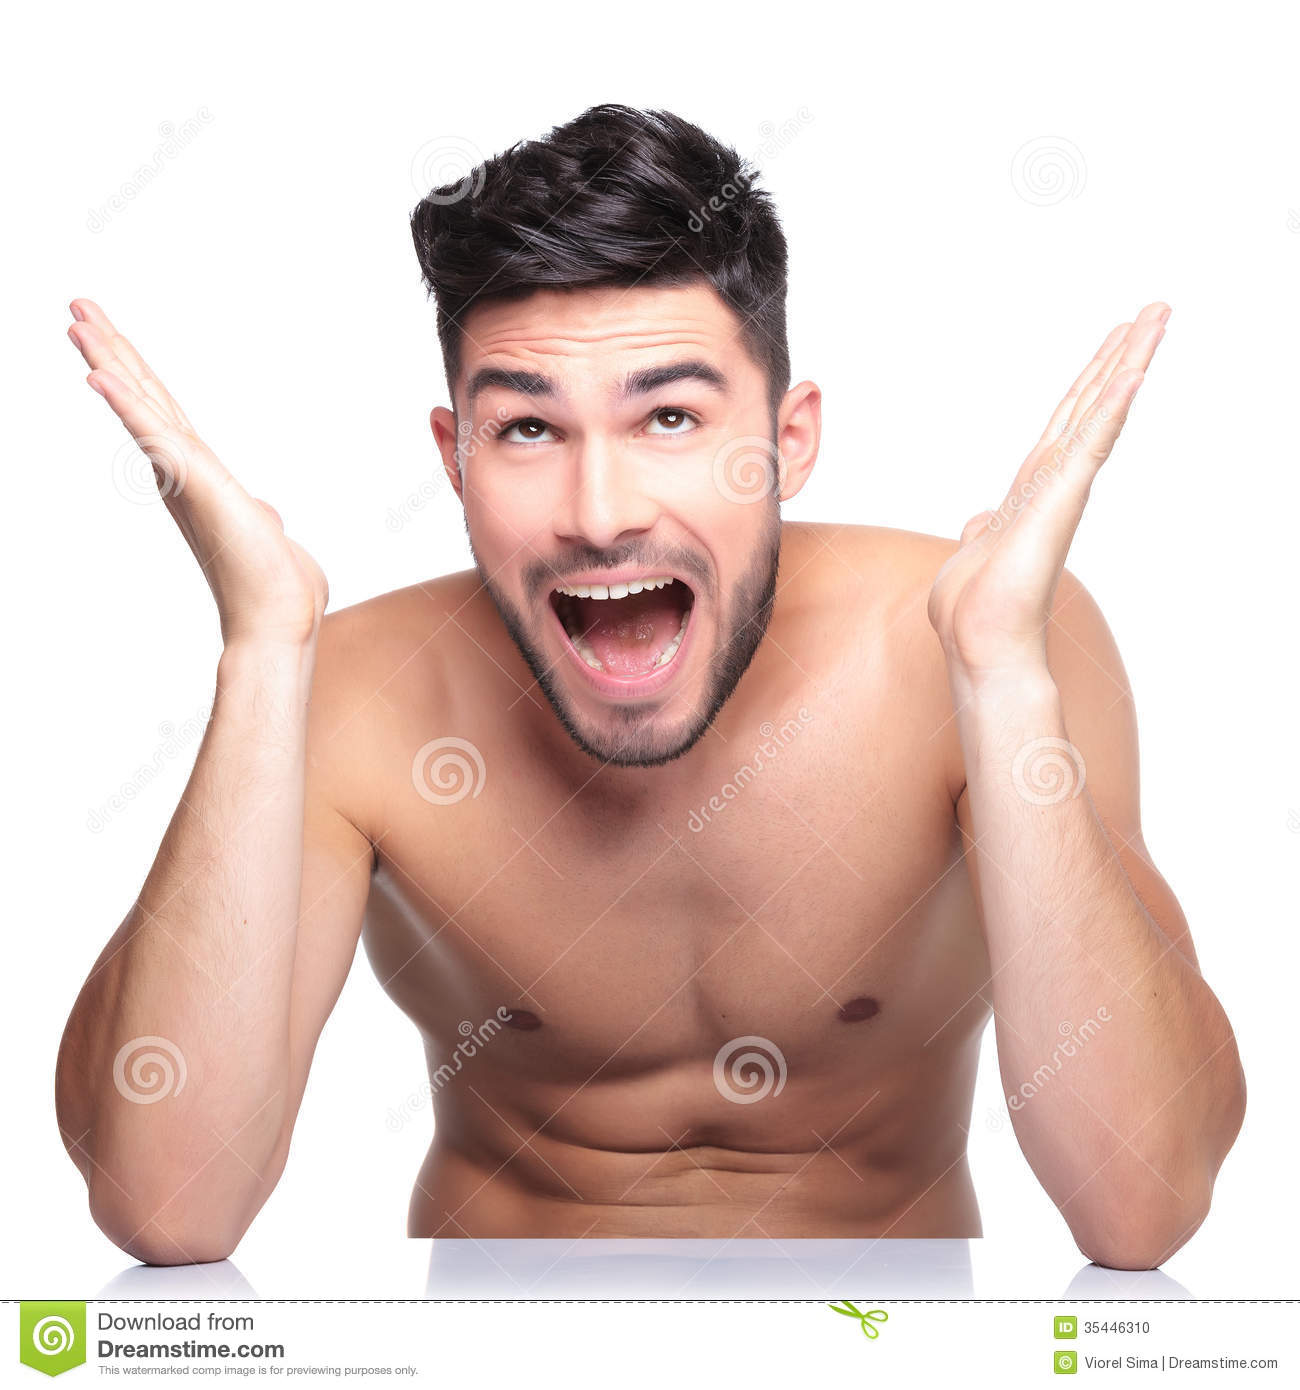 surprised naked man looking up stock photo - image of caucasian